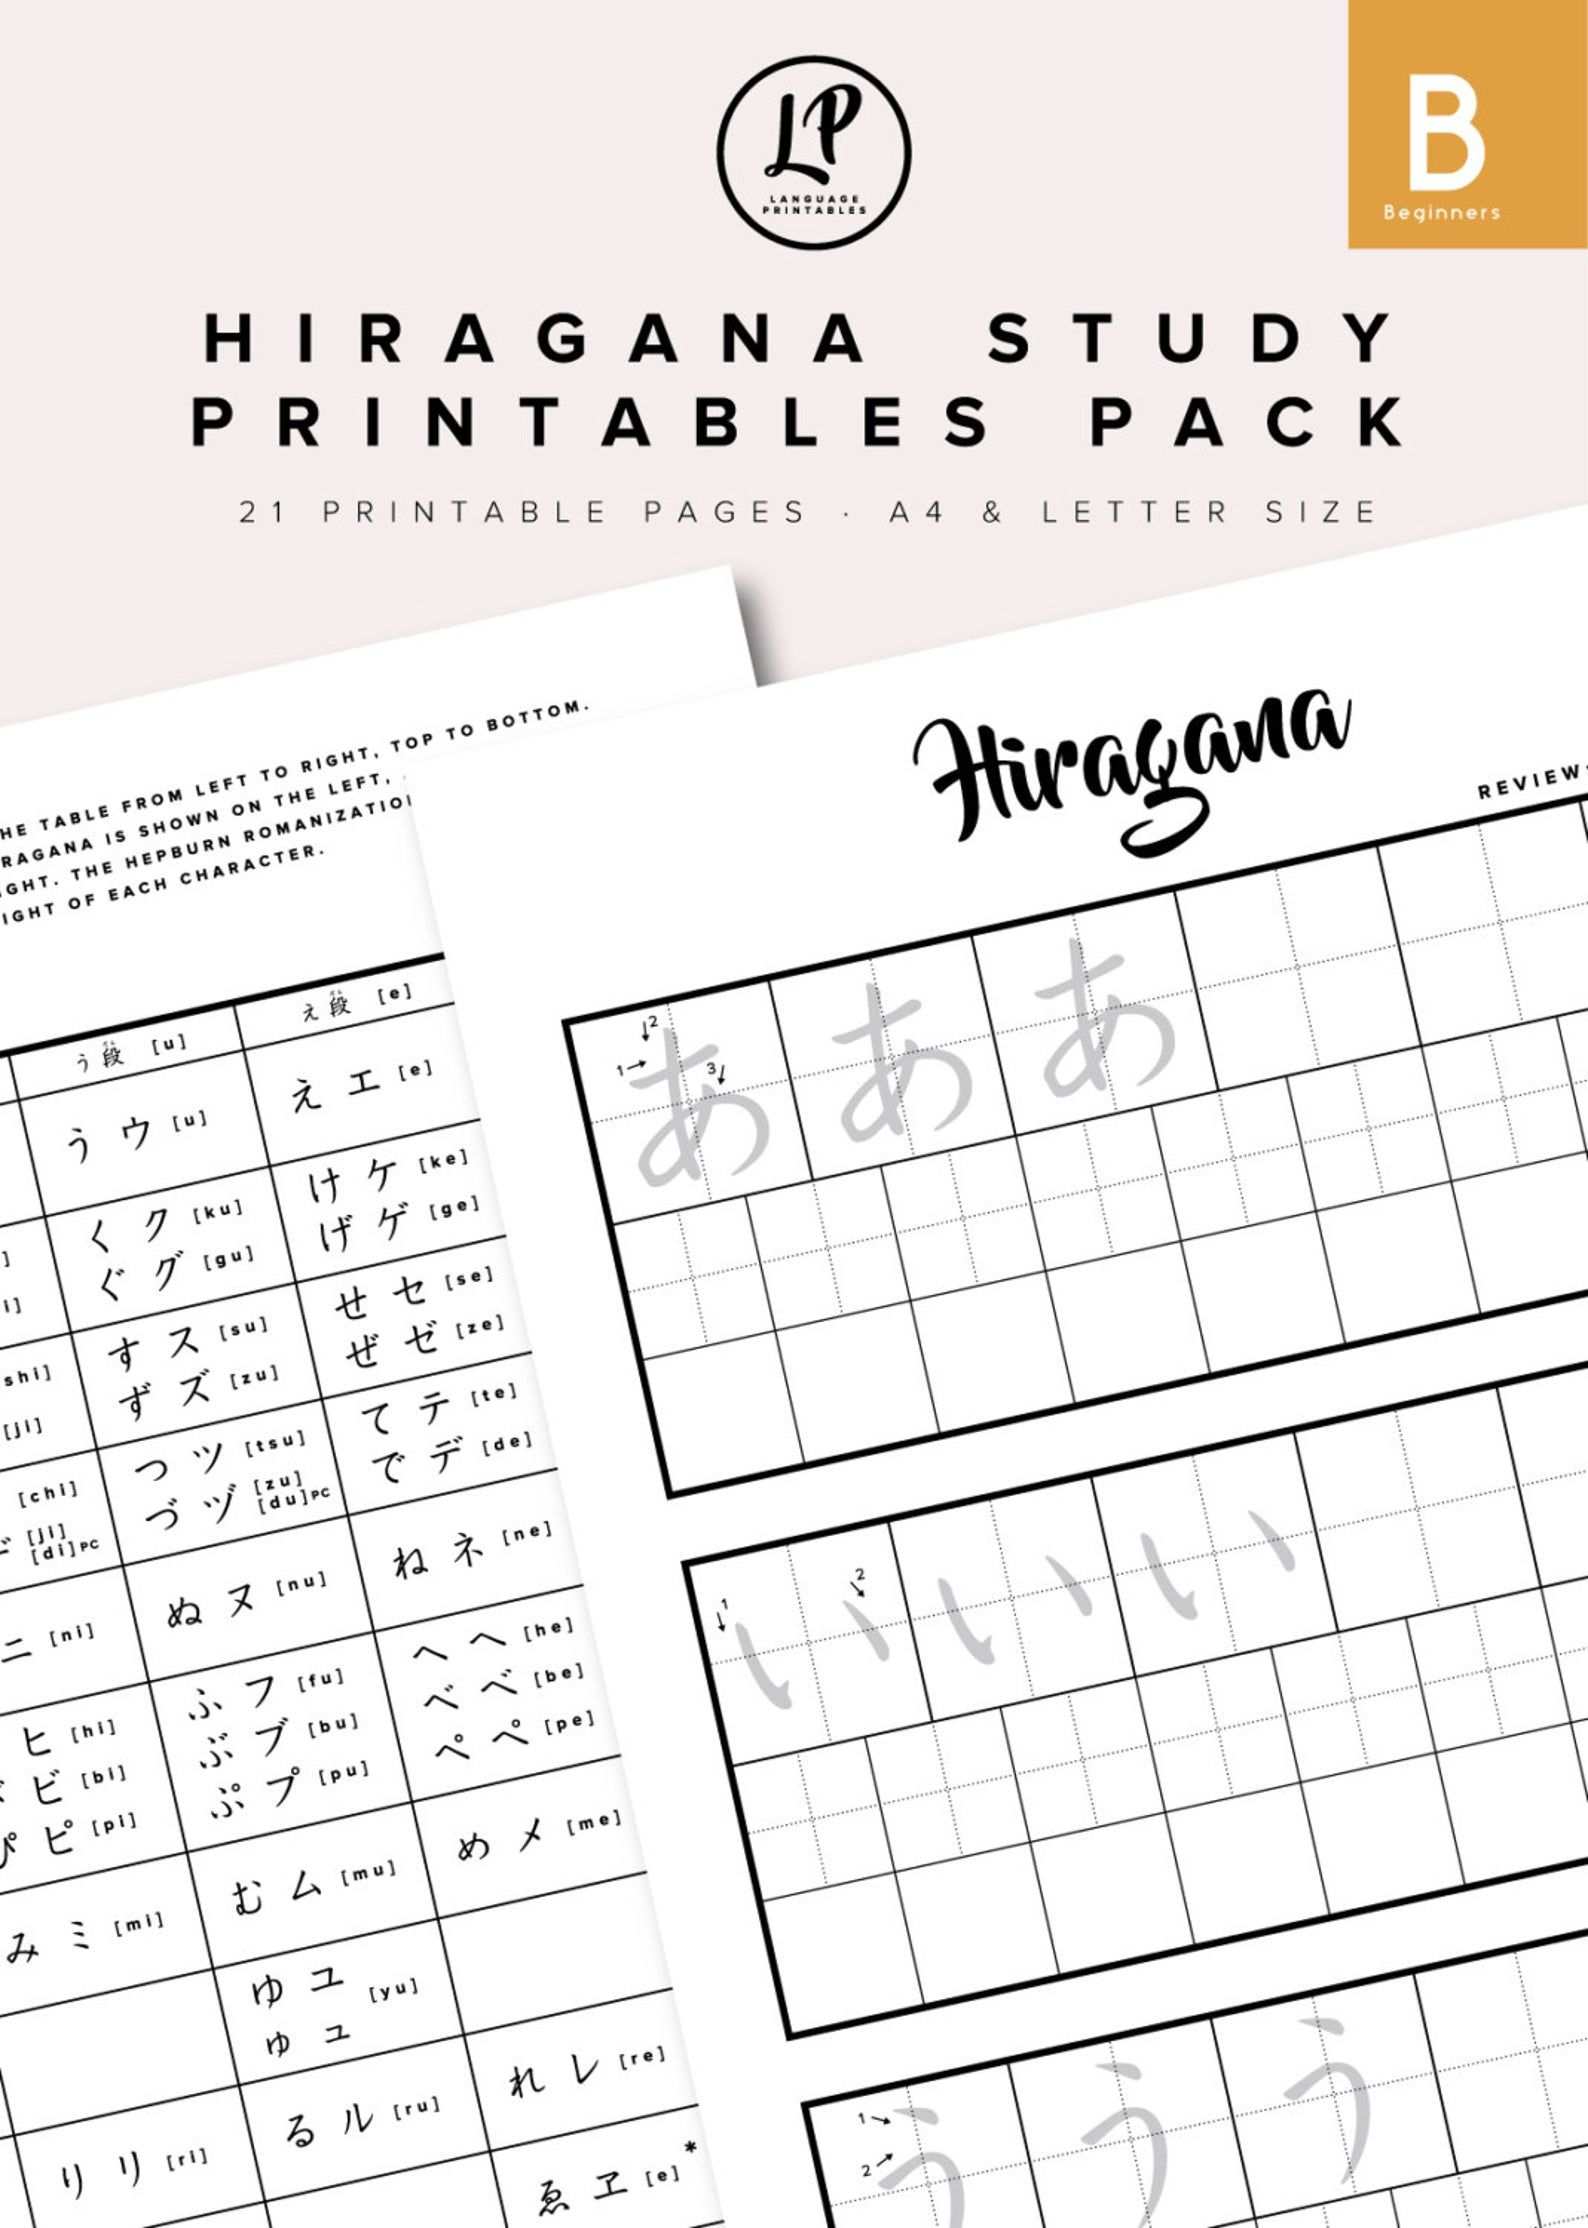 Hiragana Stuprintables Pack